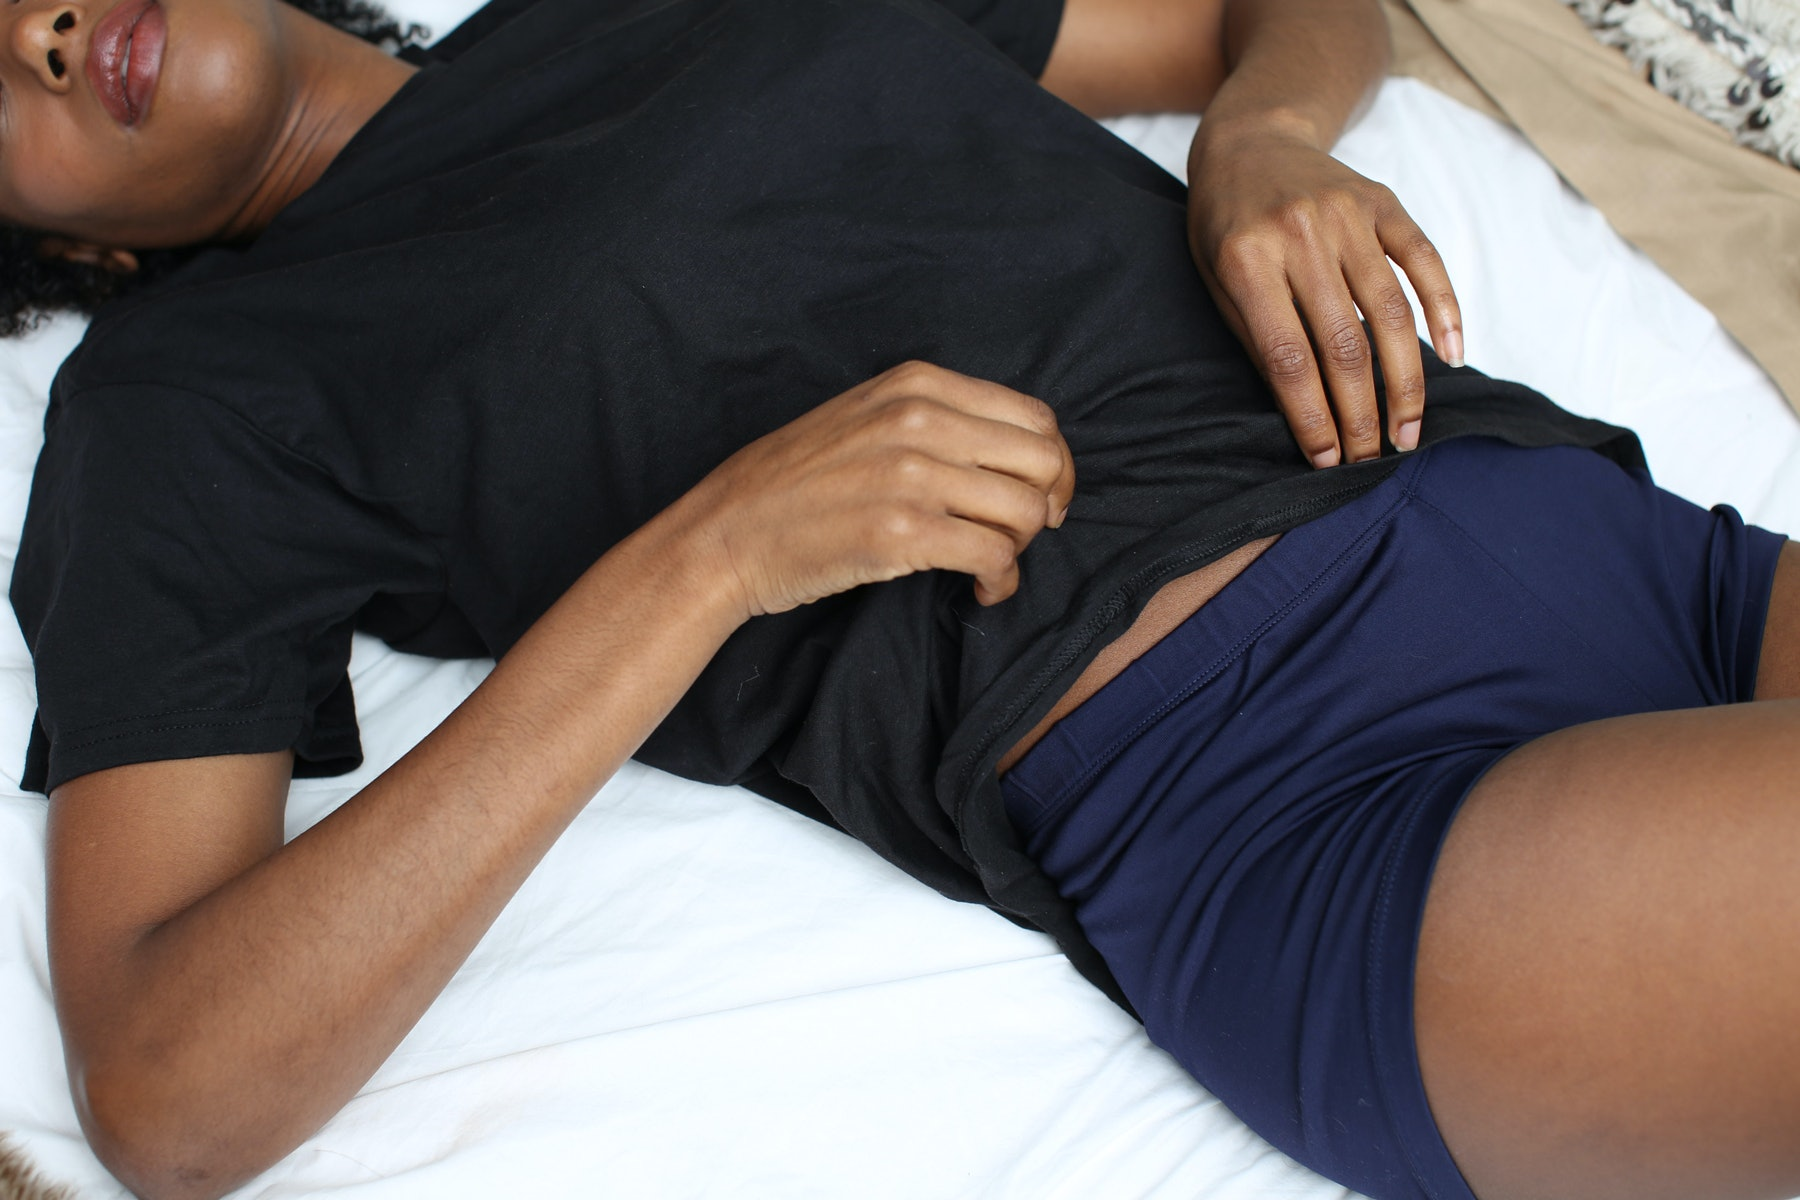 pics Sex Therapy: How to Handle 9 Super-Common Sexual Incompatibilities